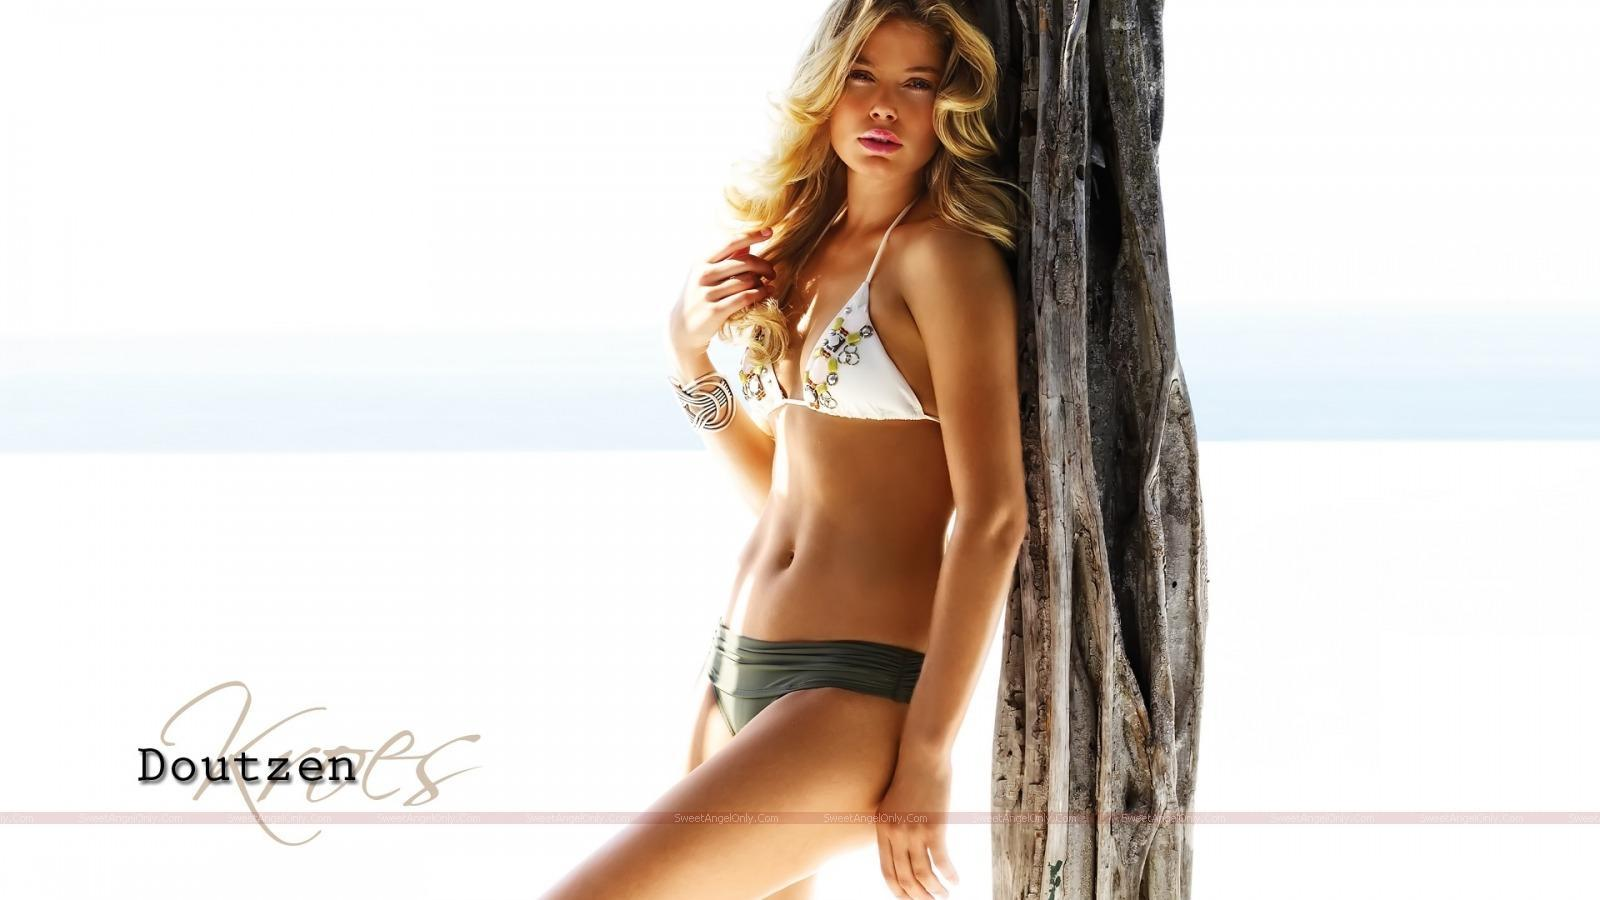 http://4.bp.blogspot.com/_jJPqWg6V3Y8/TTmIz3HRzEI/AAAAAAAADtM/-z-XgurARc8/s1600/hollywood_hot_actress_wallpapers_58_01.jpg